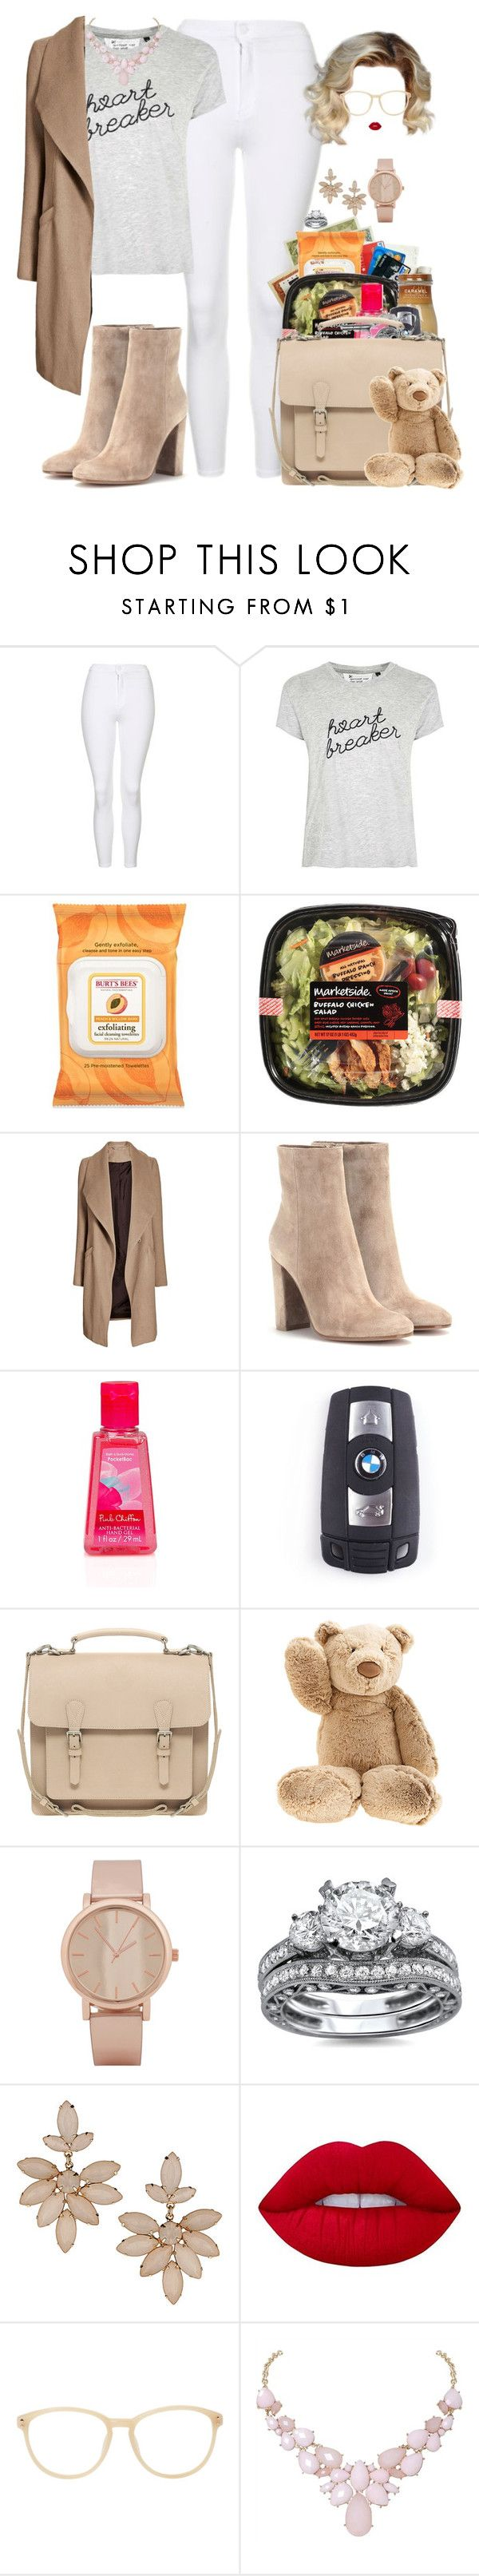 """m.o.m #30"" by princeps-1 ❤ liked on Polyvore featuring Topshop, Tee and Cake, Burt's Bees, Gianvito Rossi, BMW, Pieces, Jellycat, ALDO, Dorothy Perkins and Lime Crime"